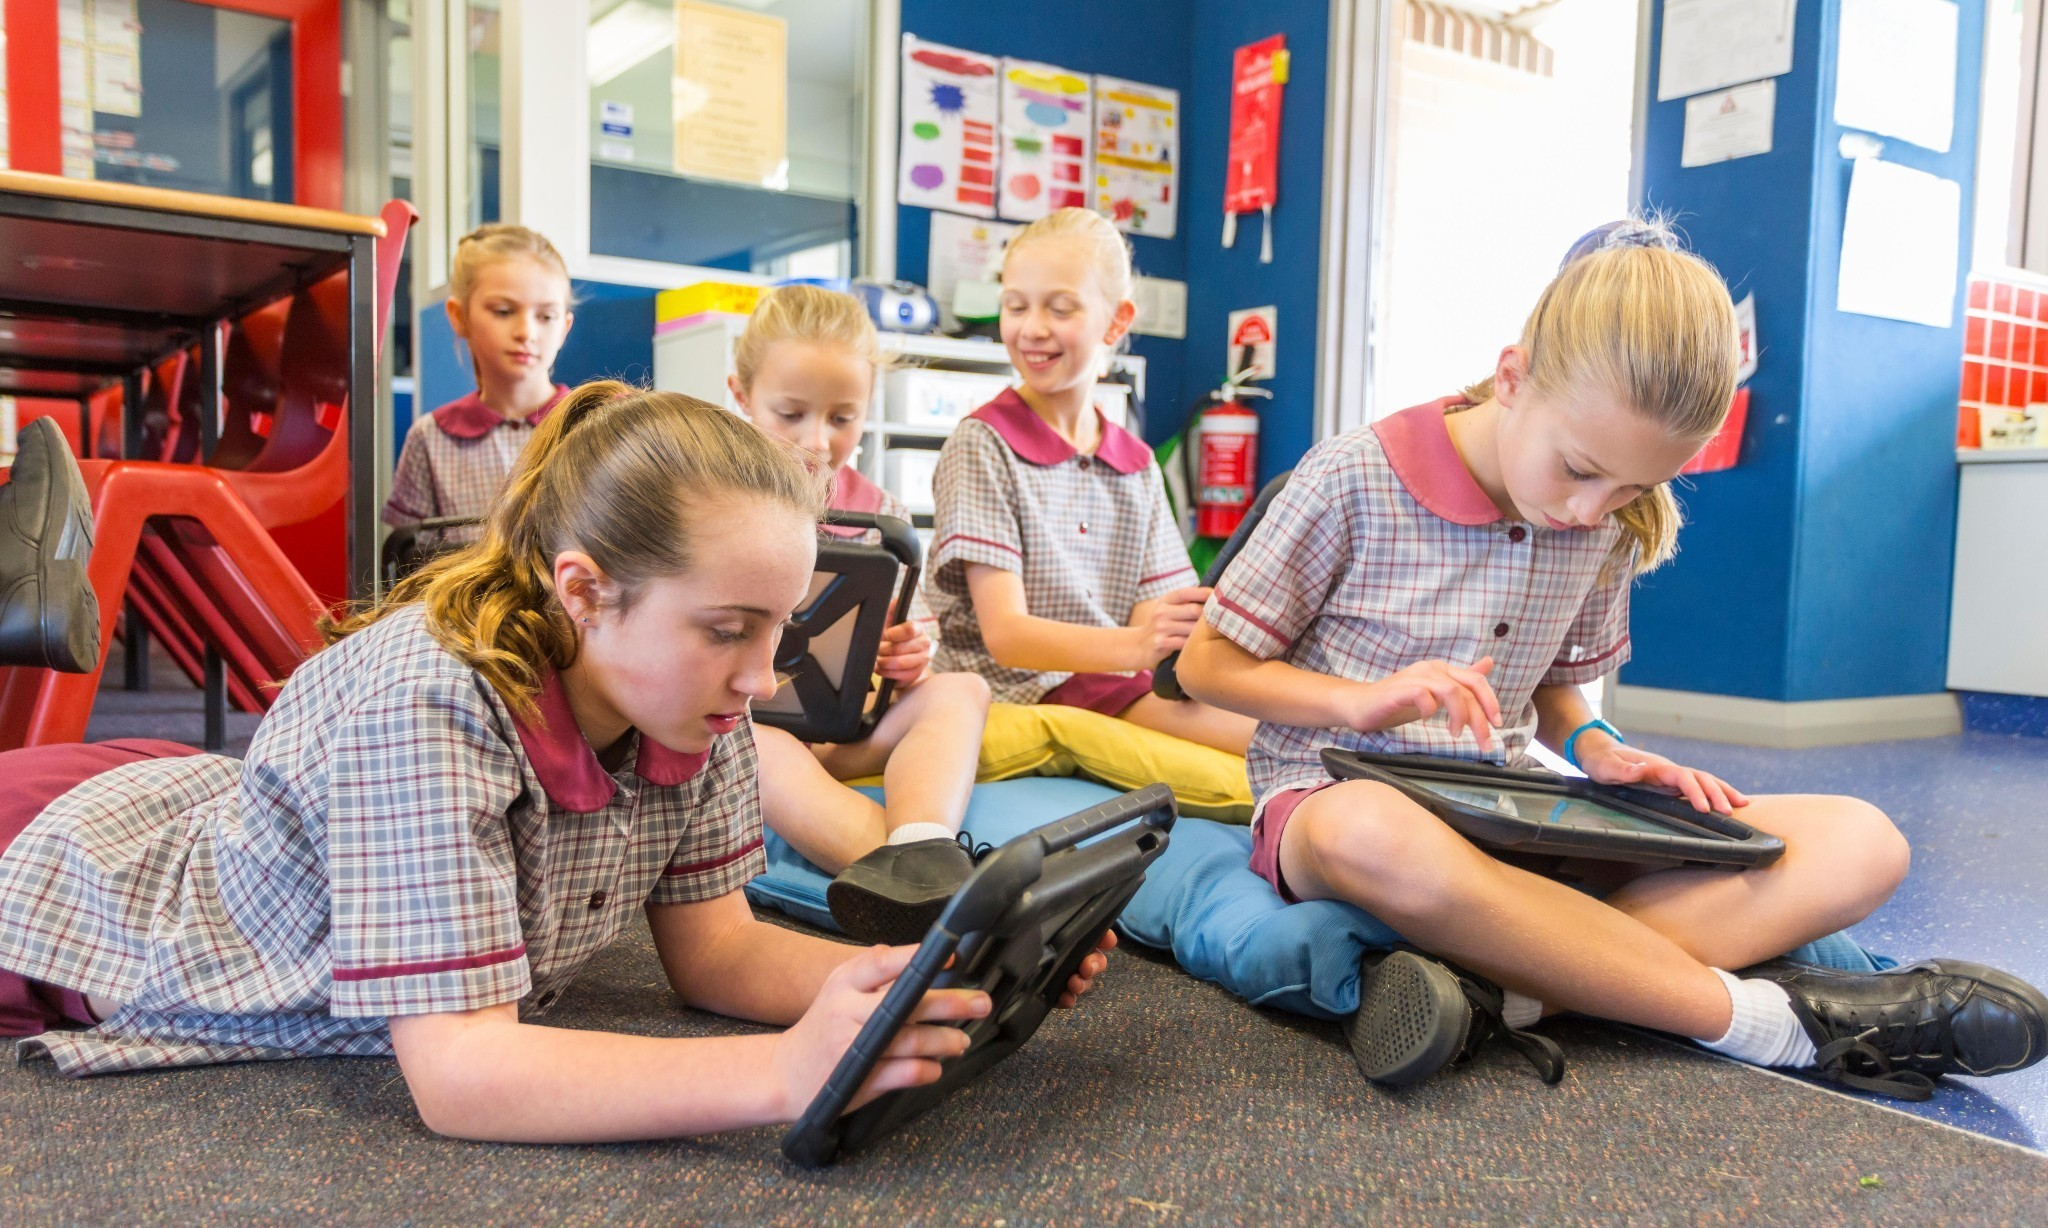 Australian parents want schools to teach more social skills, survey finds